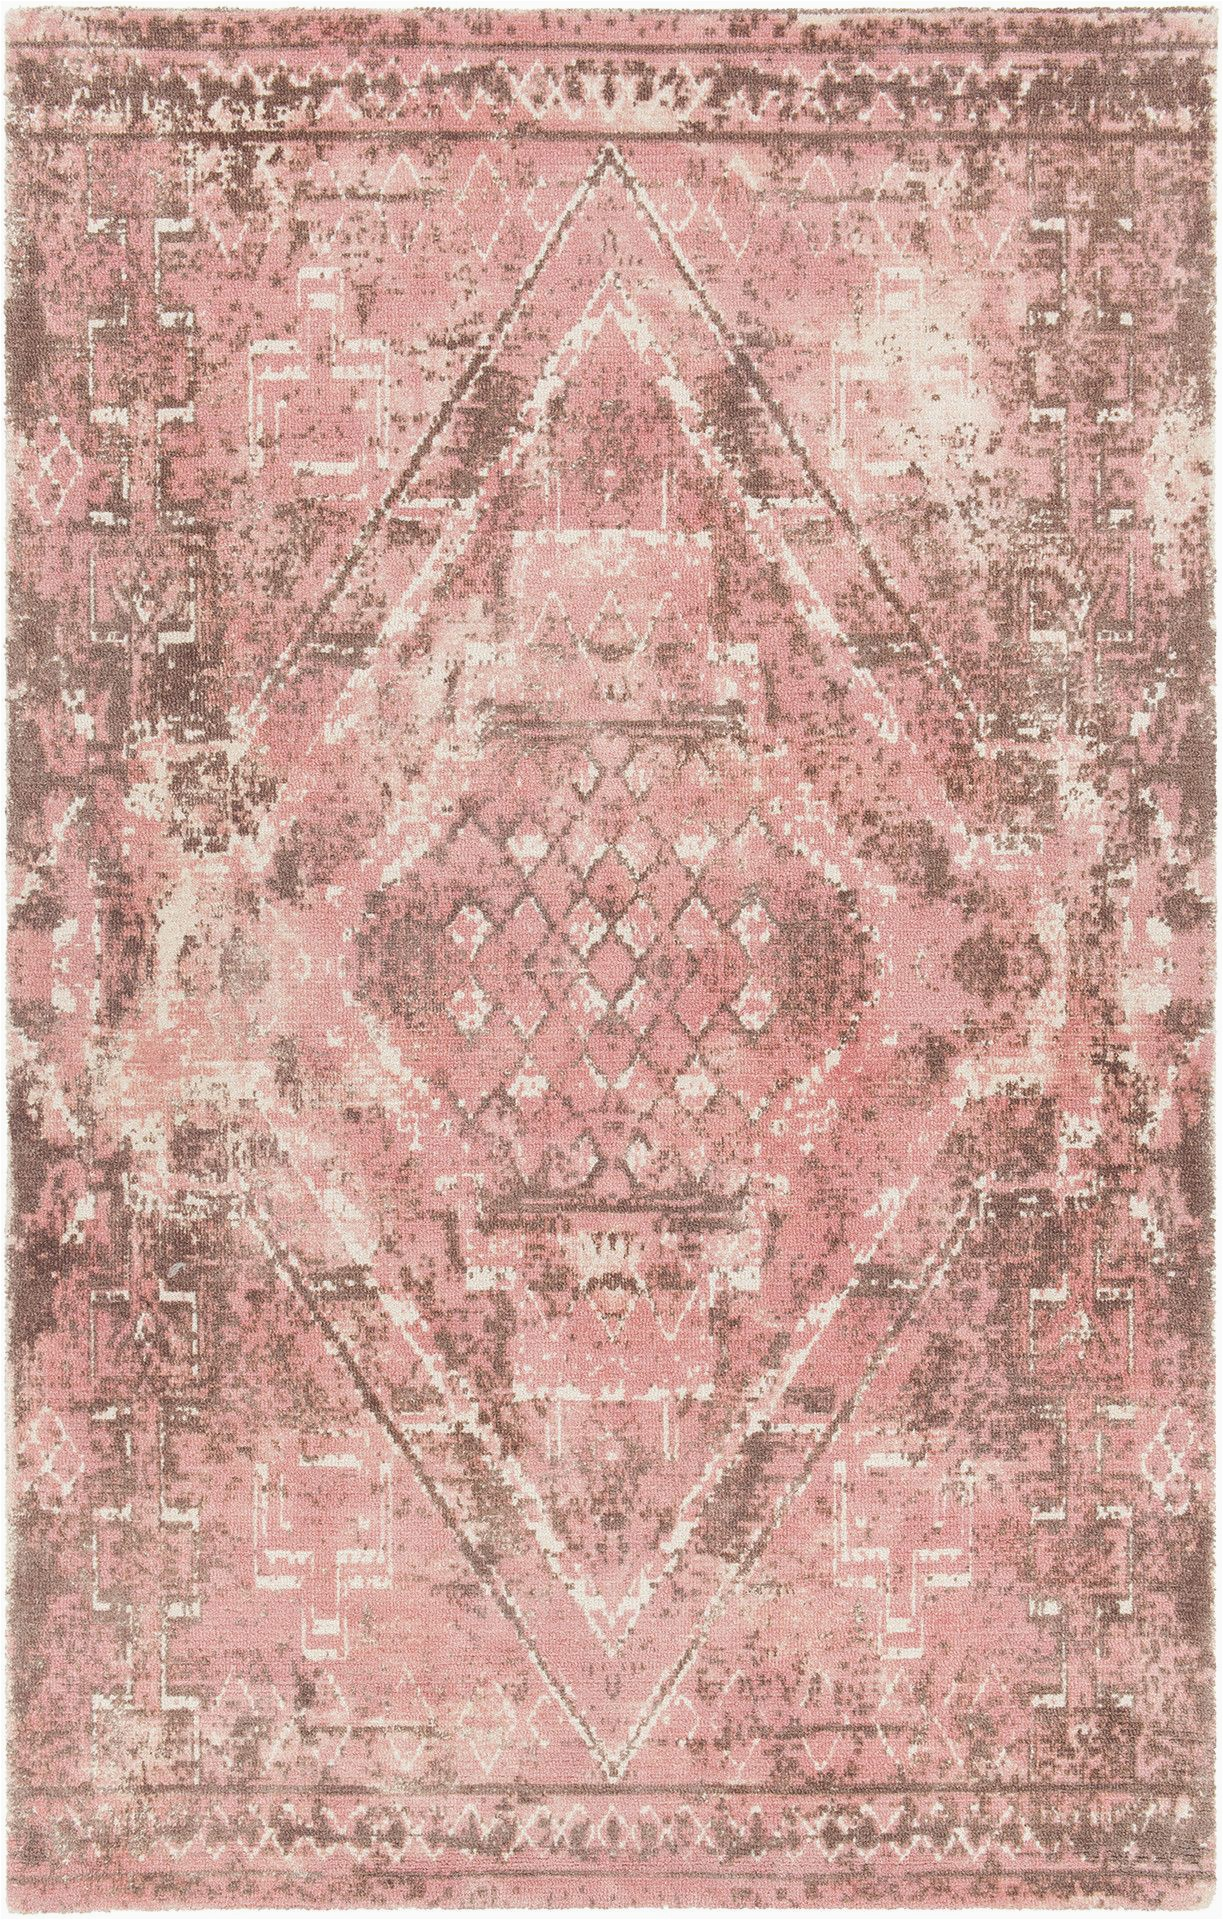 Brown and Pink area Rugs Tayla Hand Tufted Pink Brown area Rug